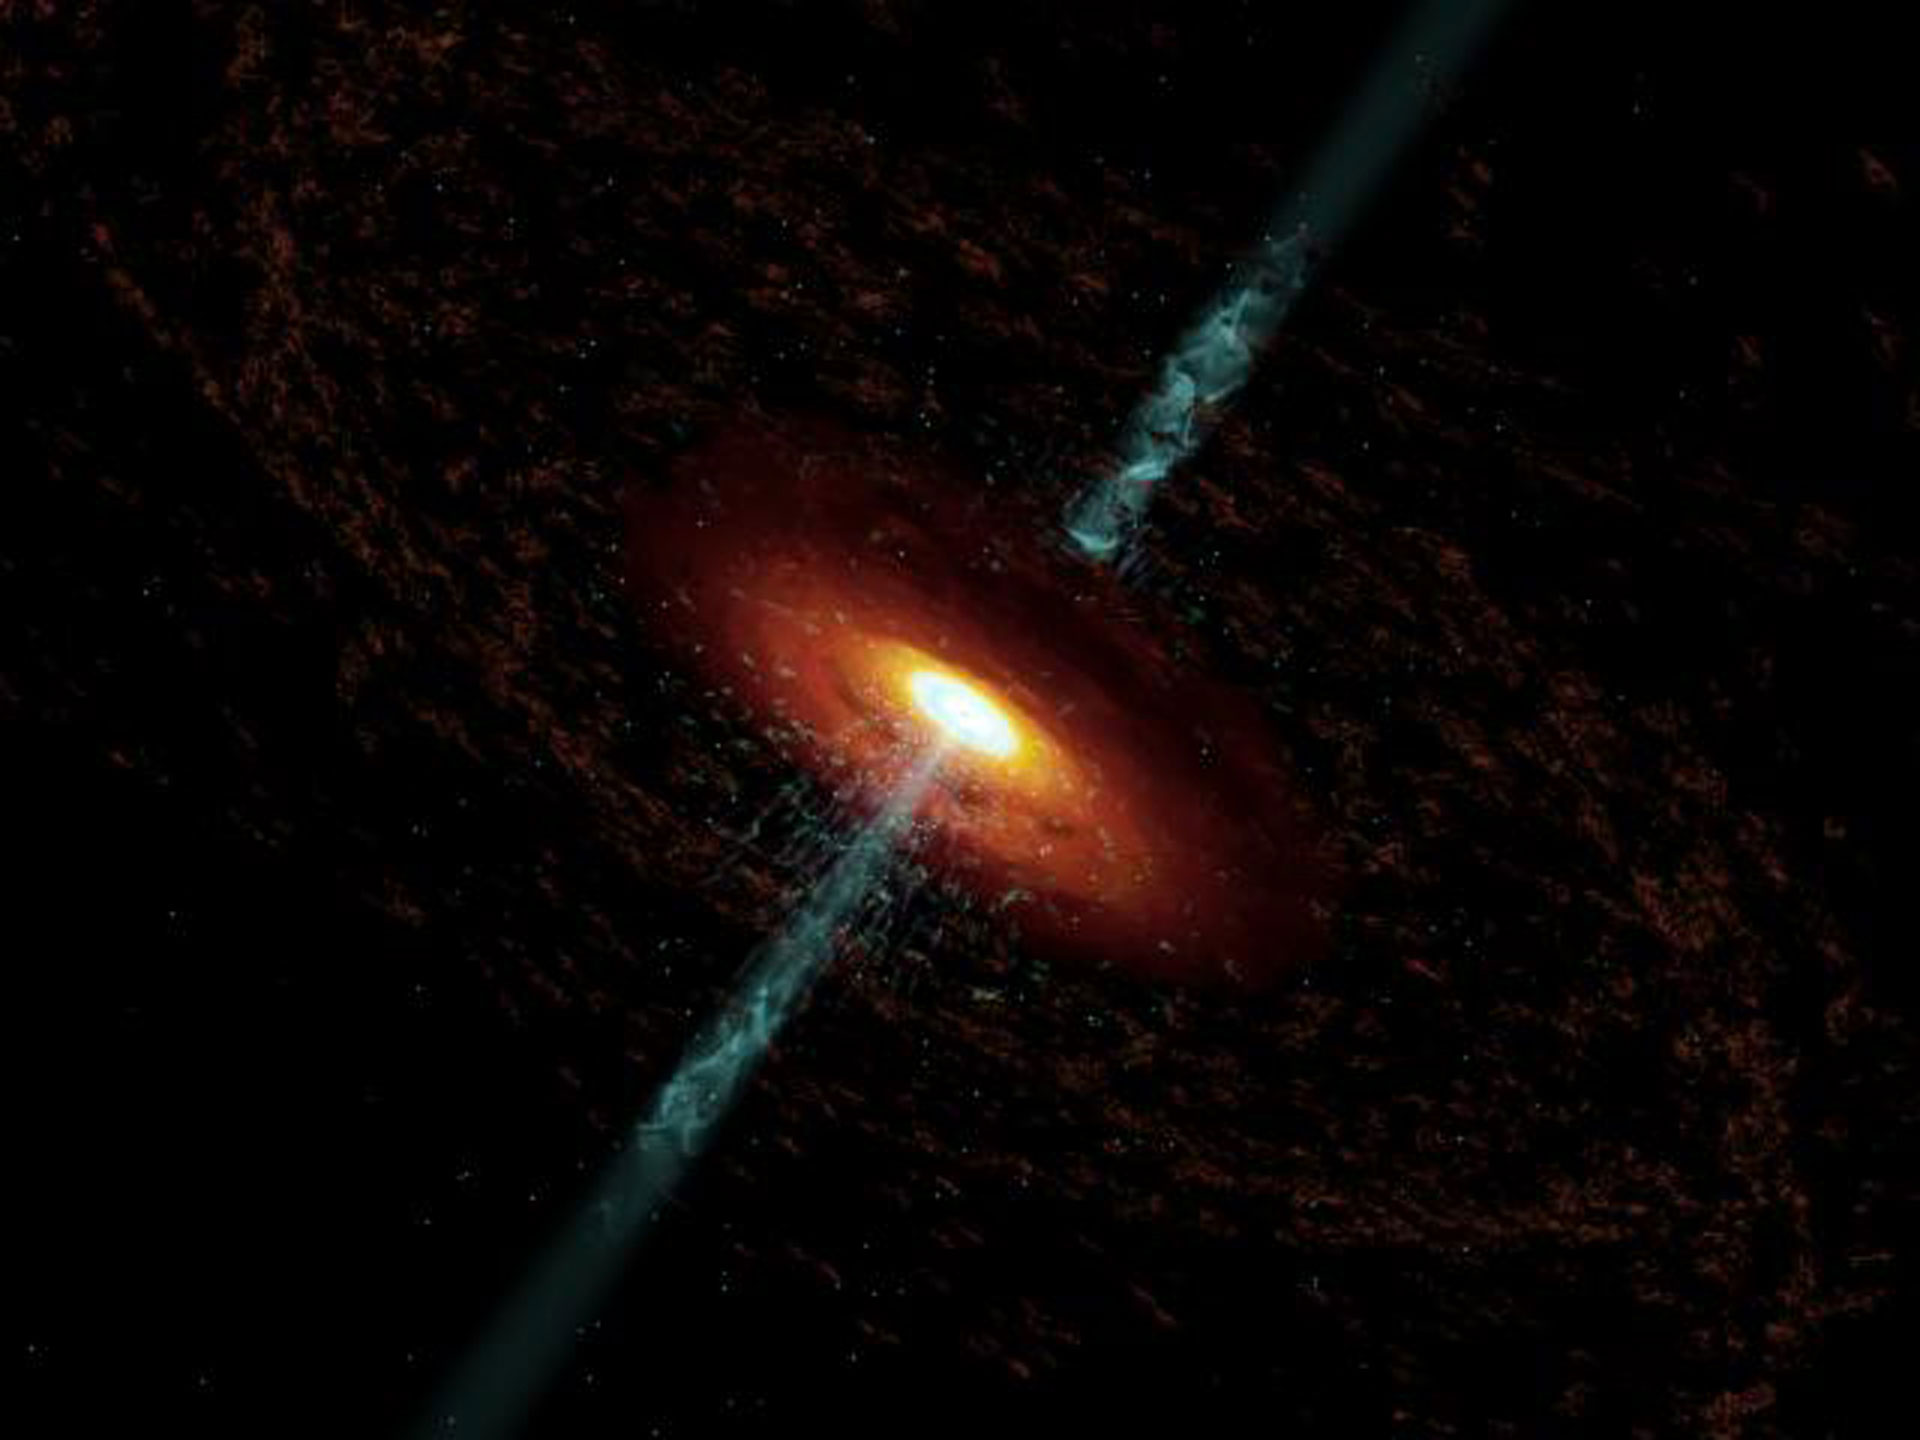 The Active Galactic Nucleus of 3C 120